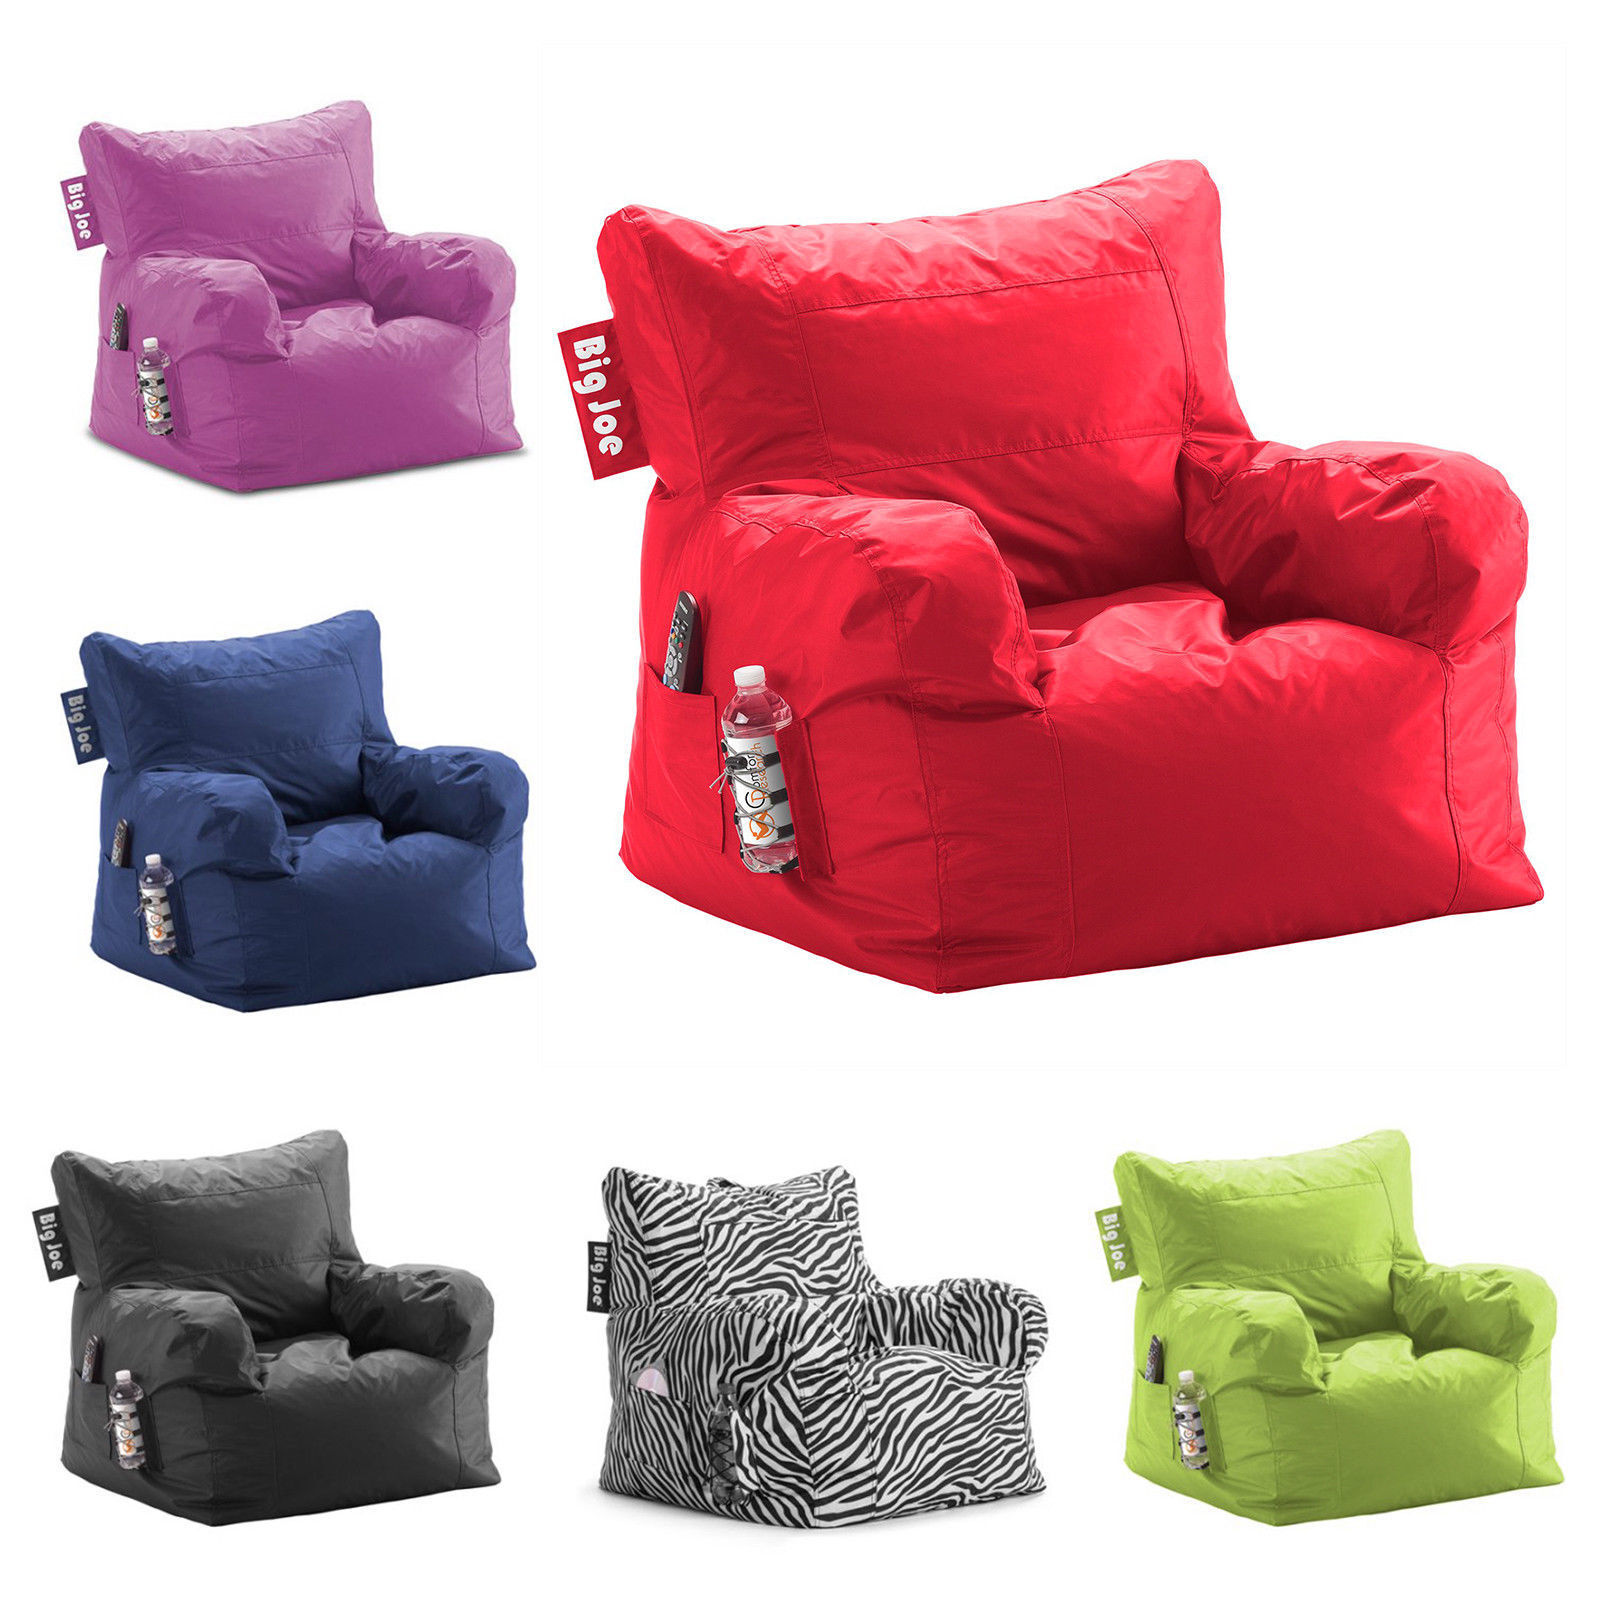 Swell Big Joe Bean Bag Cozy Comfort Chair Dorm Stain Resistant Waterproof Relax Sofa Pabps2019 Chair Design Images Pabps2019Com